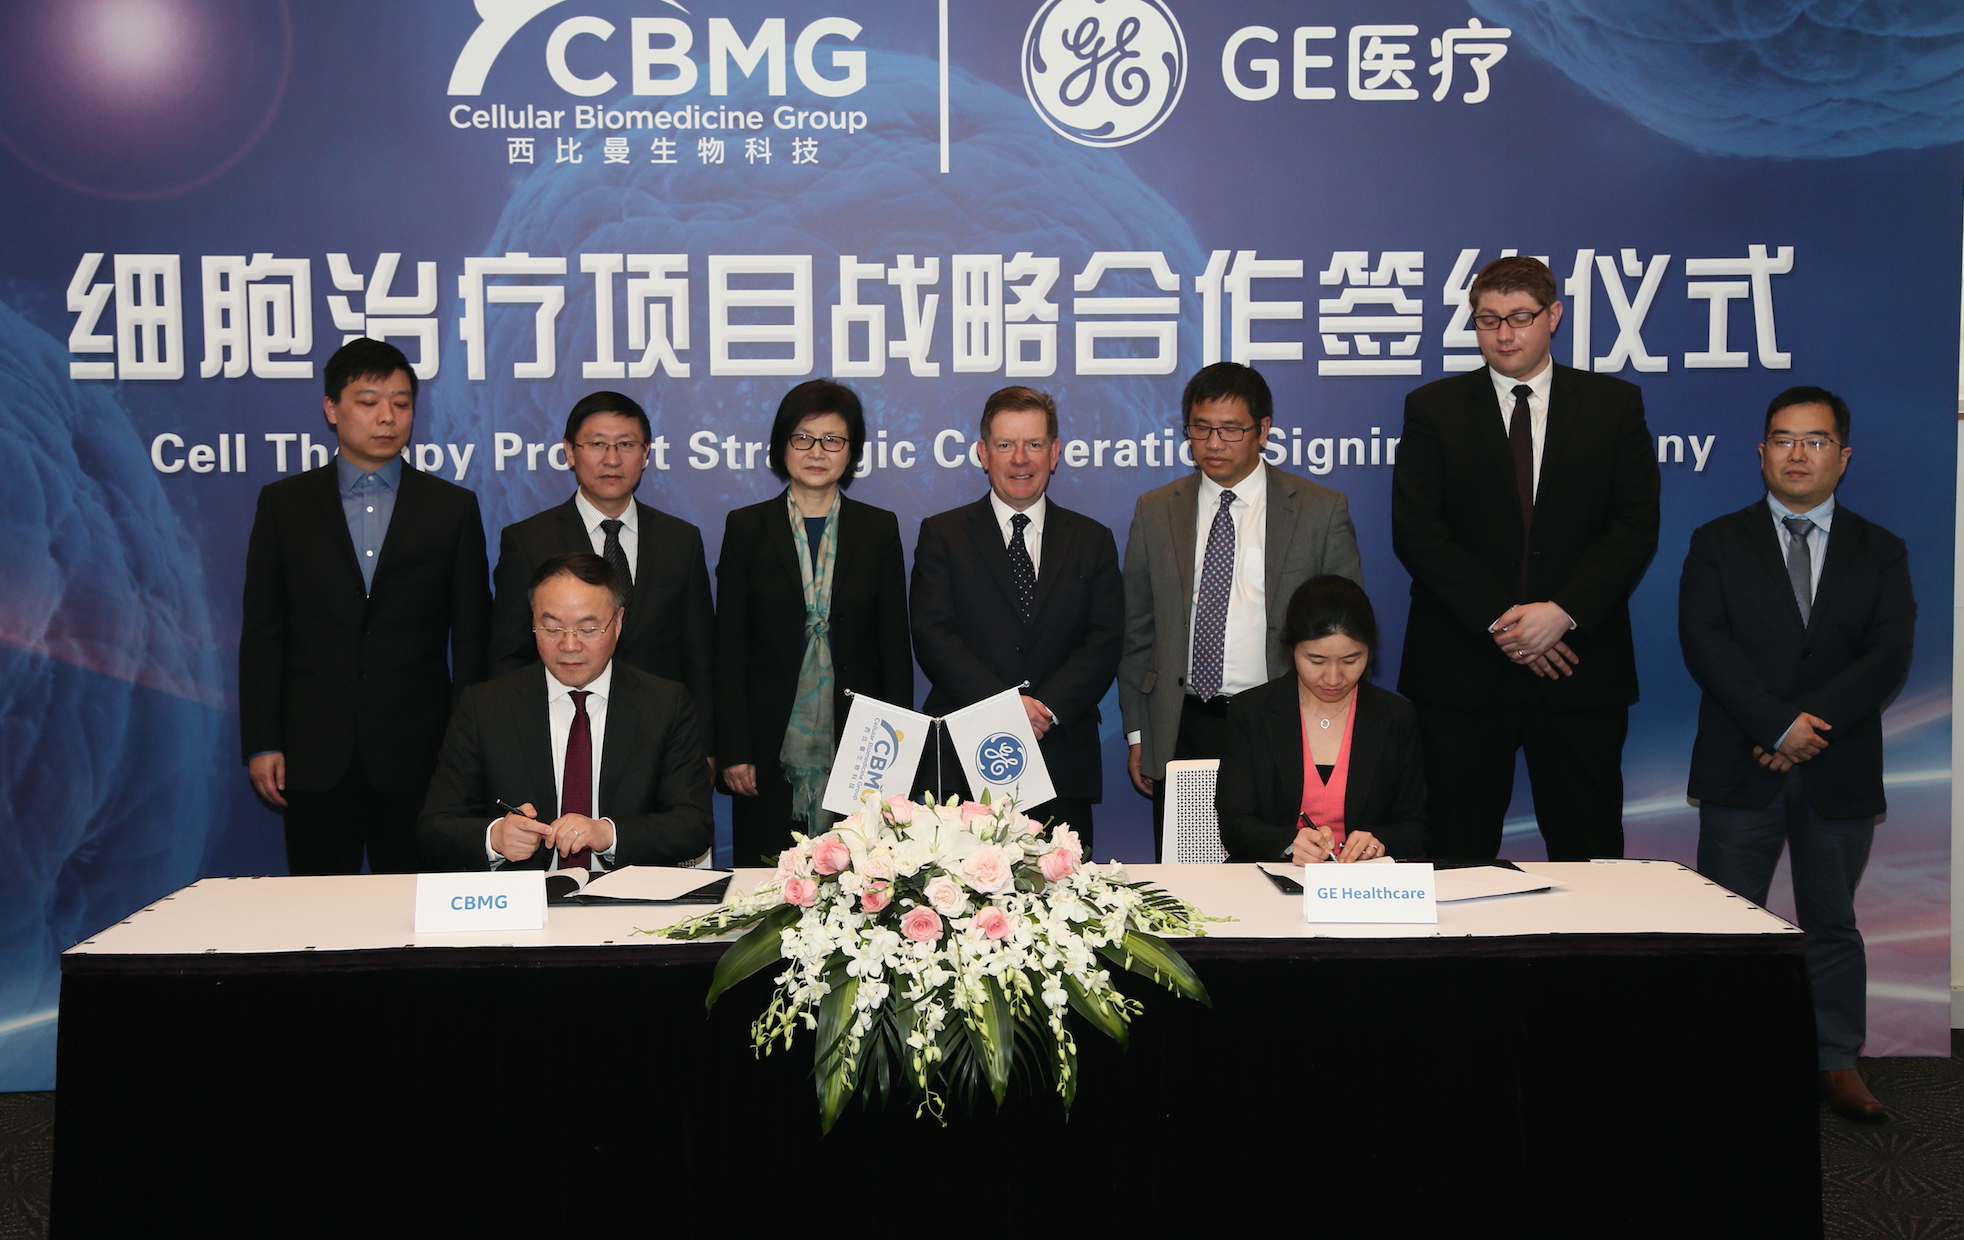 CBMG GE sign agreement